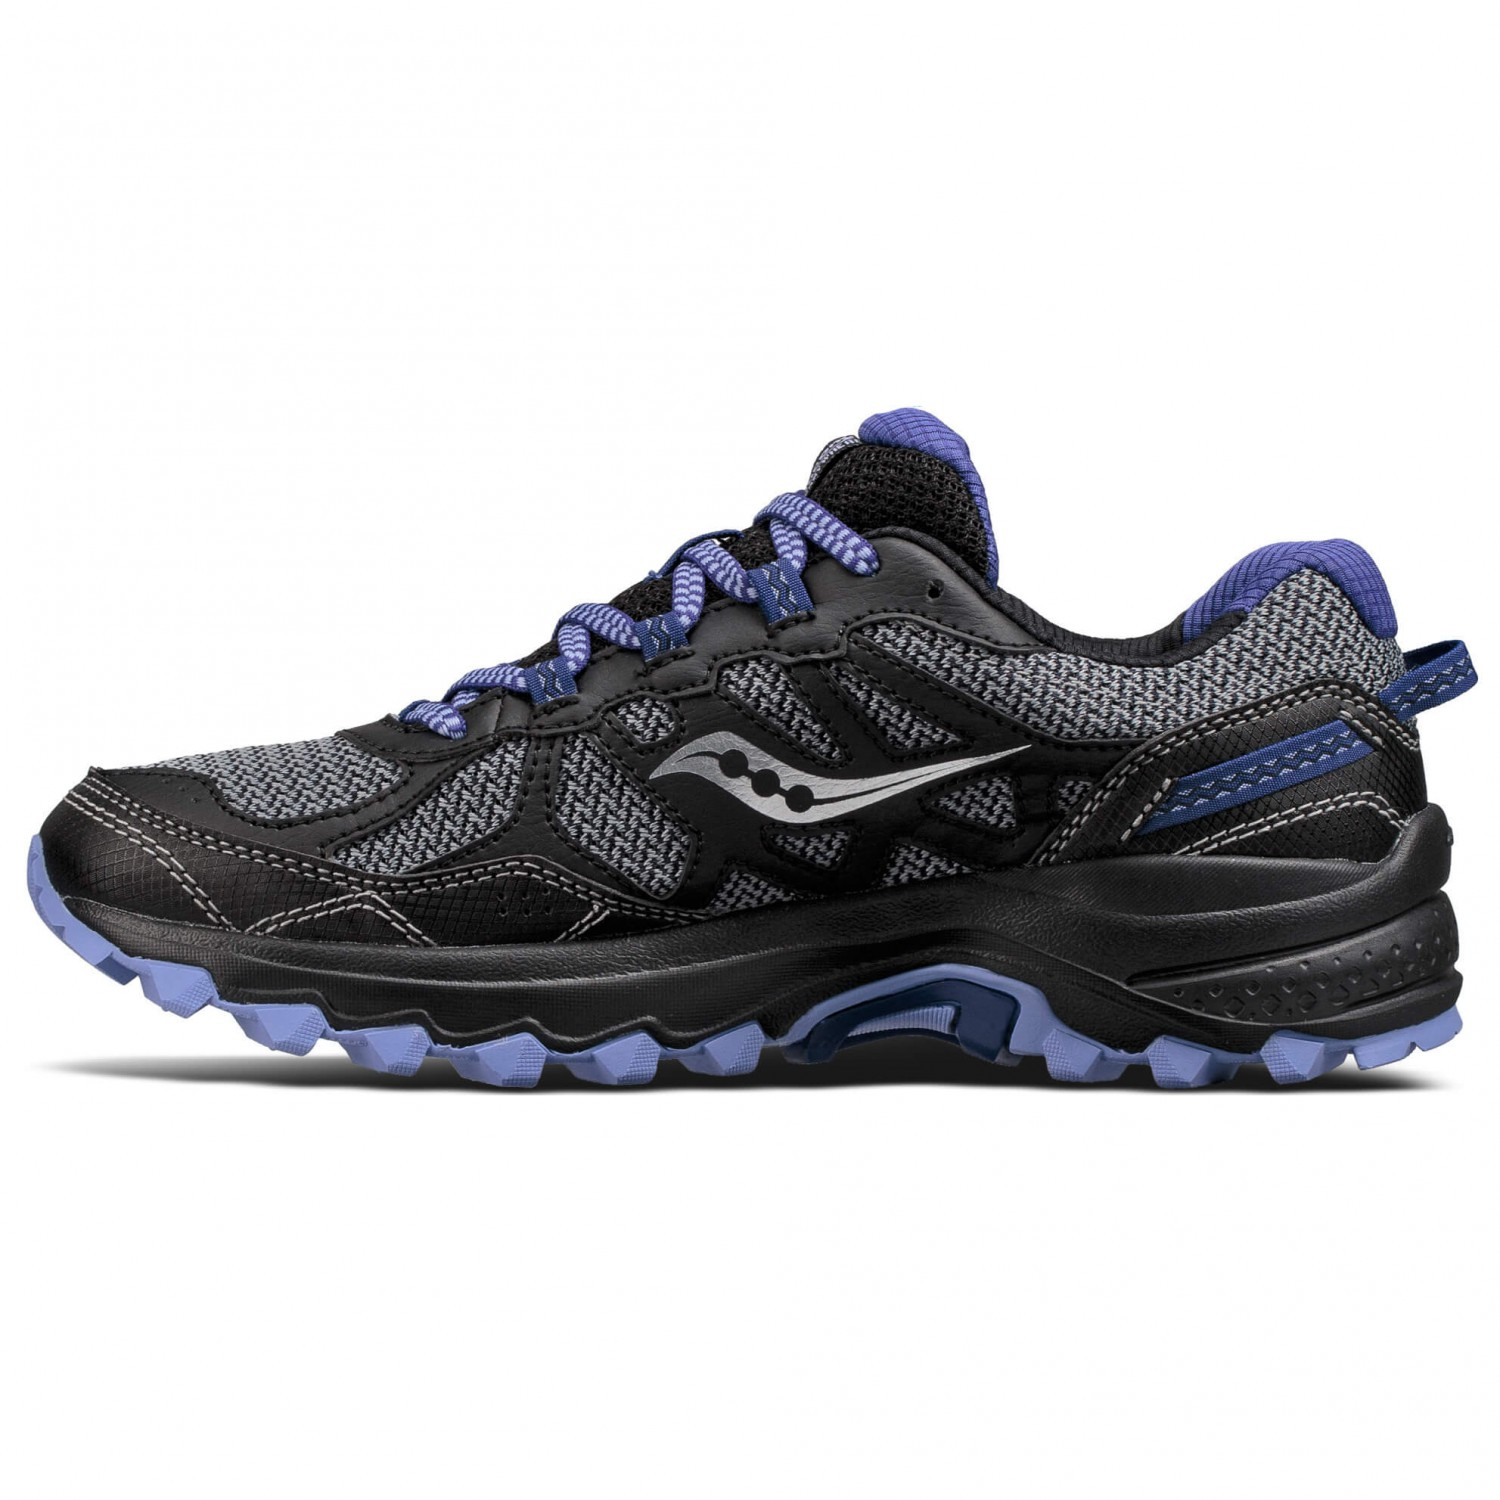 57baac11e884 ... Saucony - Women s Excursion TR11 GTX - Trail running shoes ...